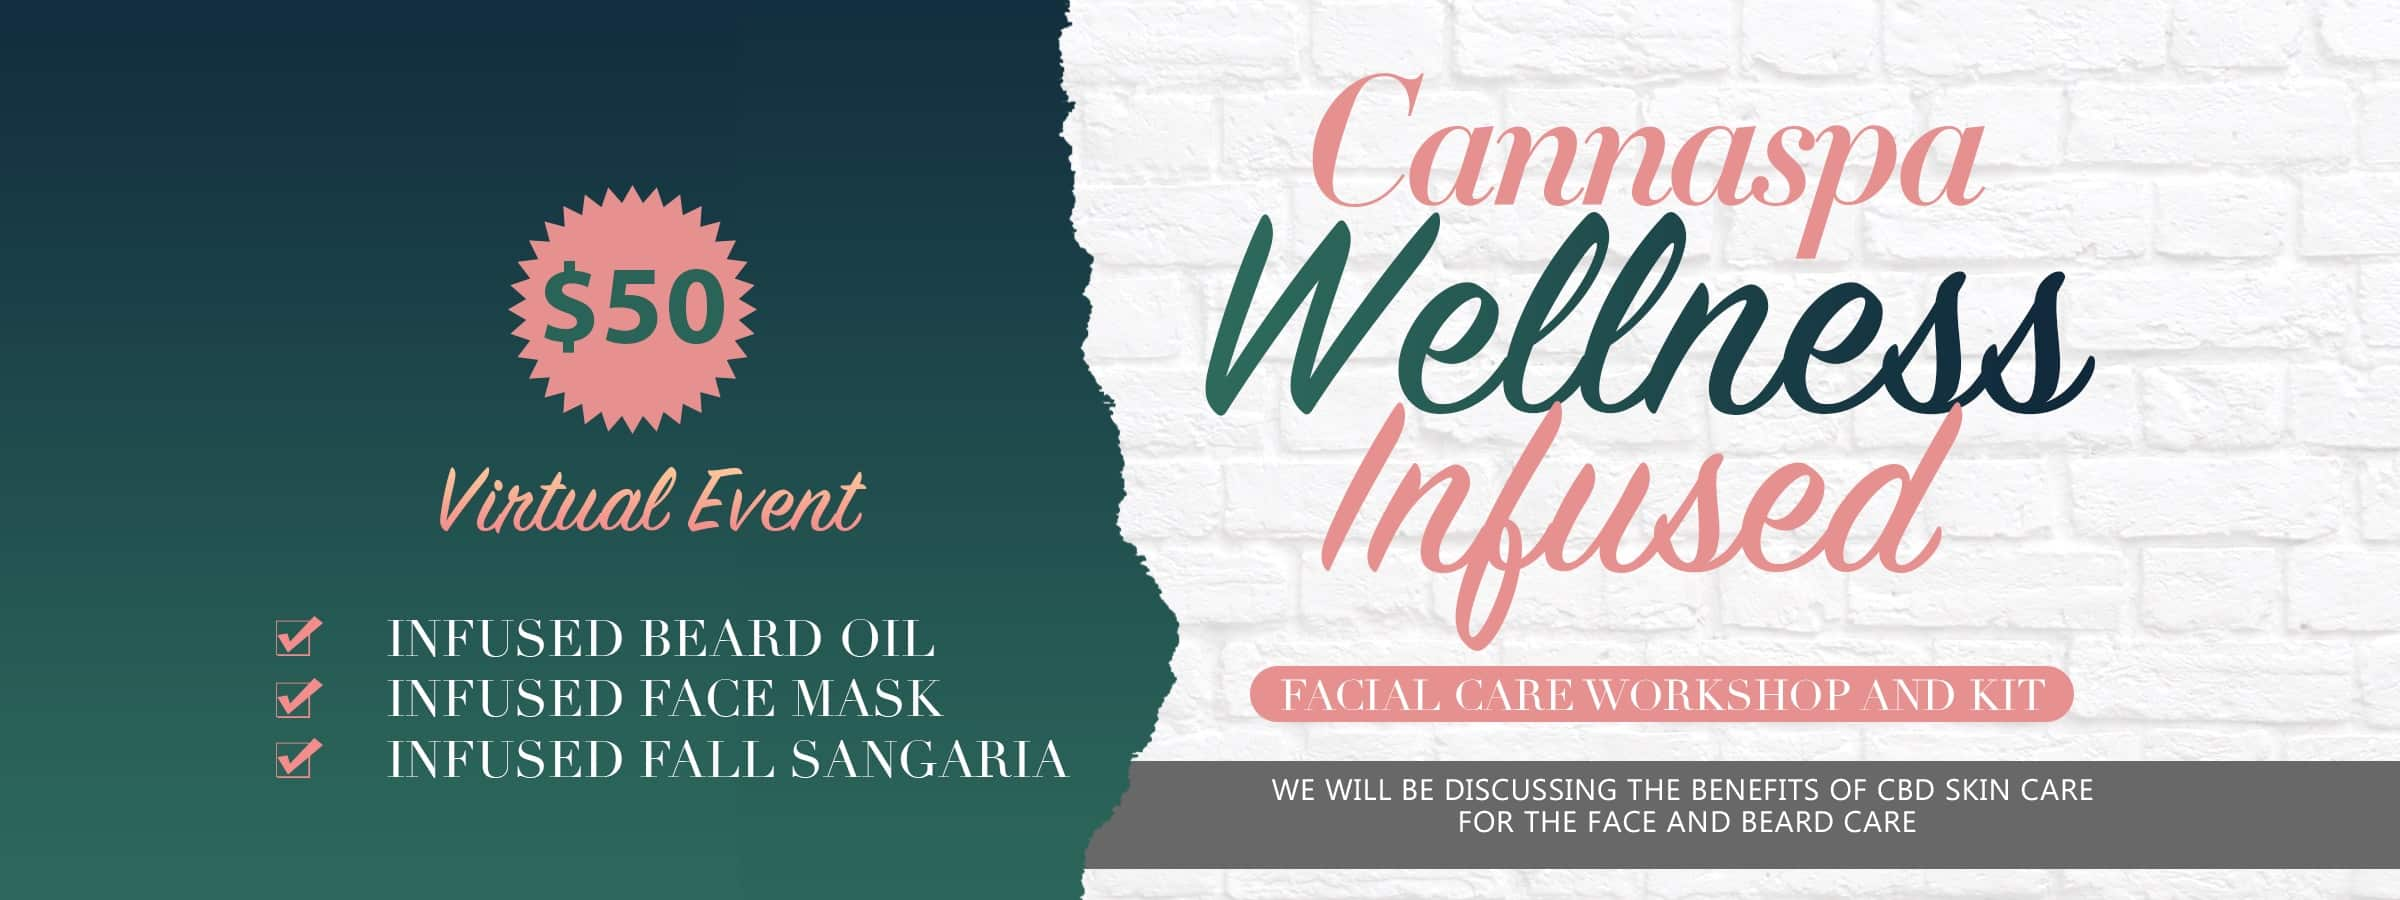 Cannaspa Wellness Infused Facial Care workshop and kit